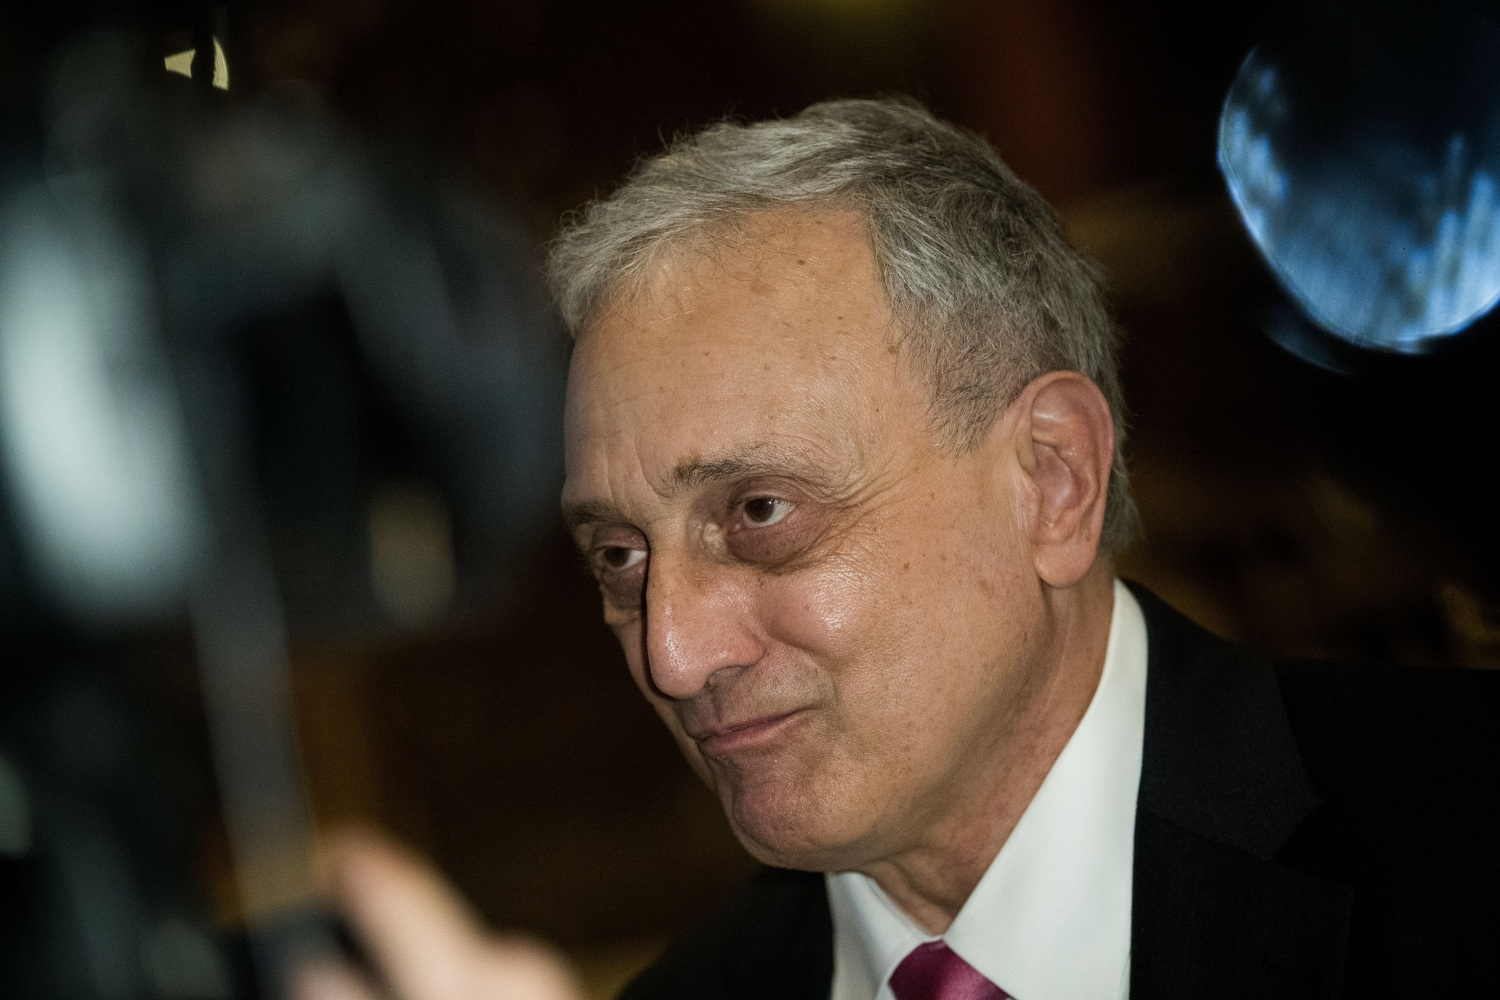 Paladino facing criticism for Obama 'wishes'